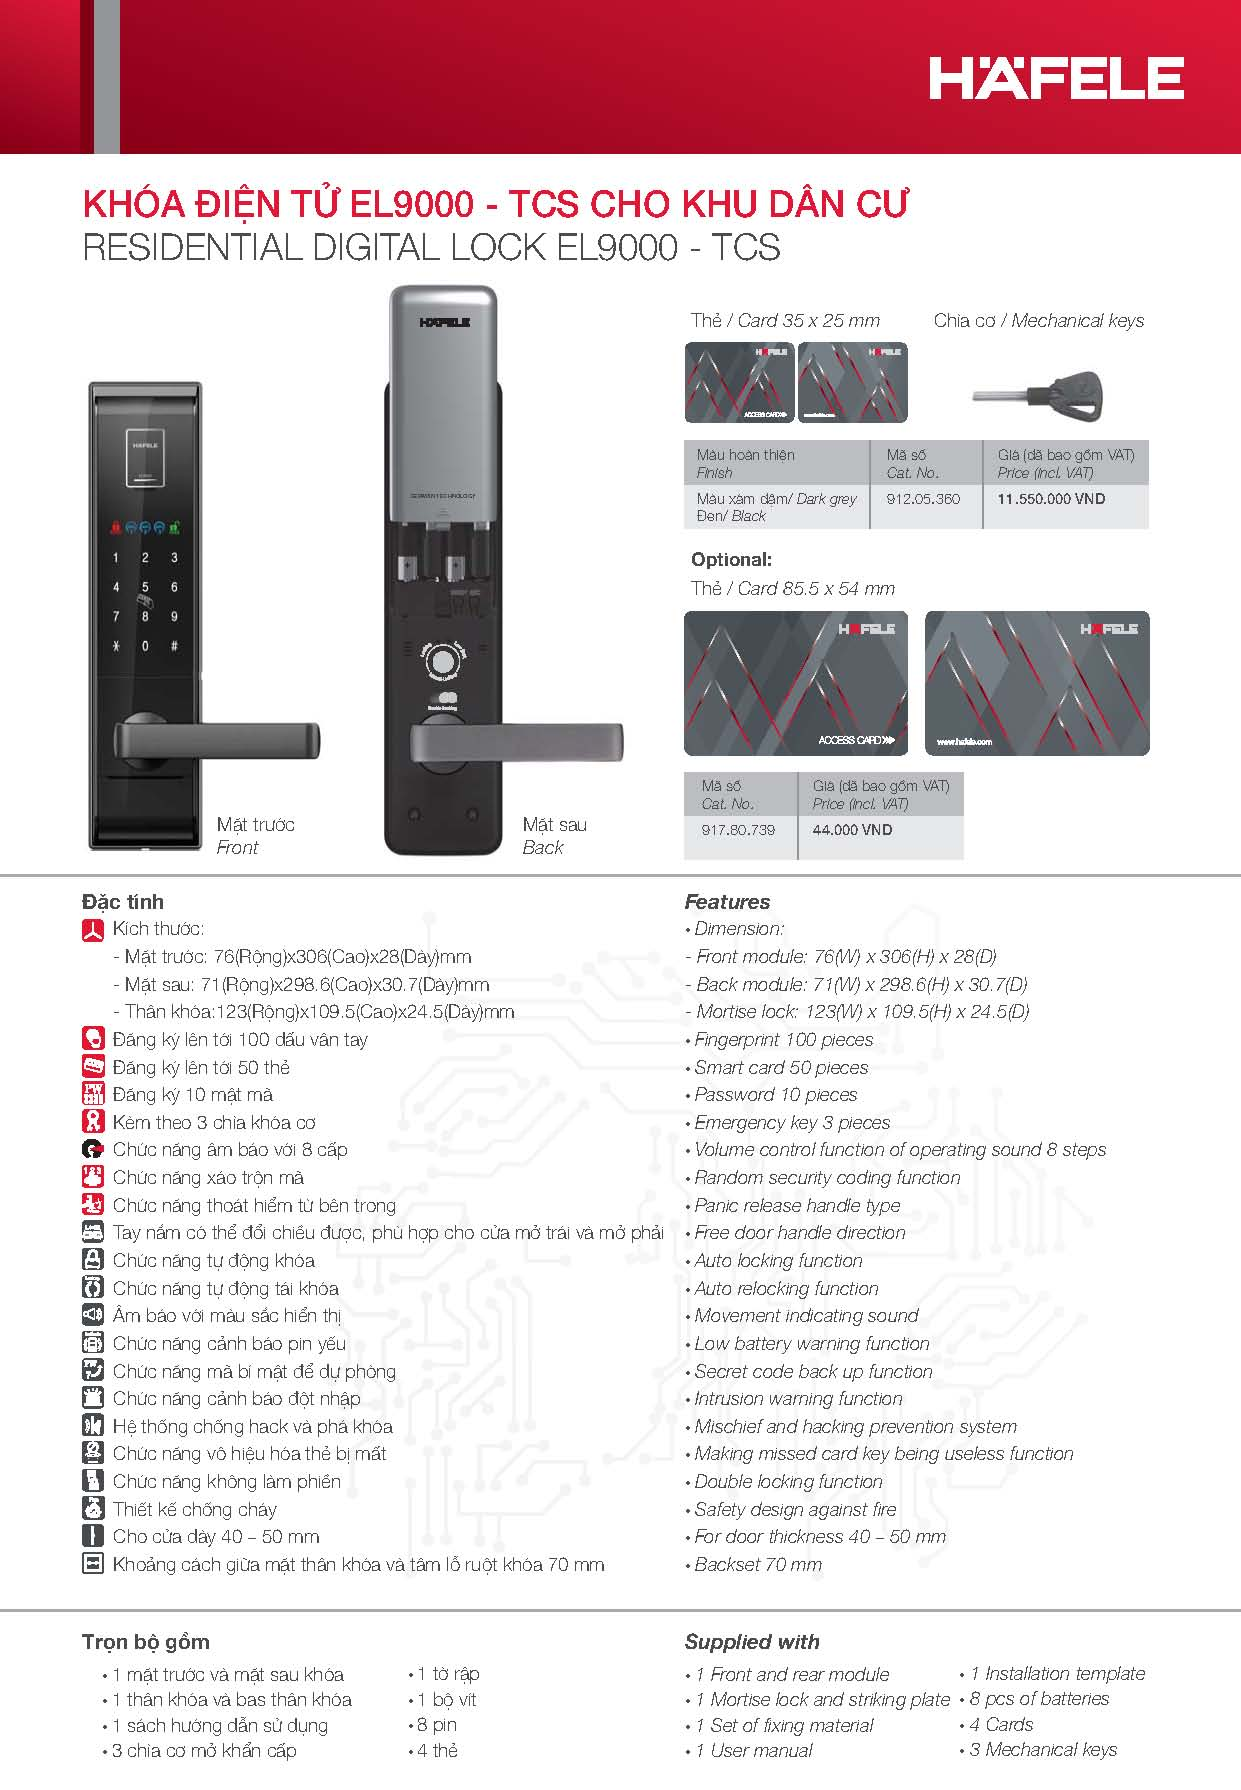 Digital door lock EL- 9000 TCS